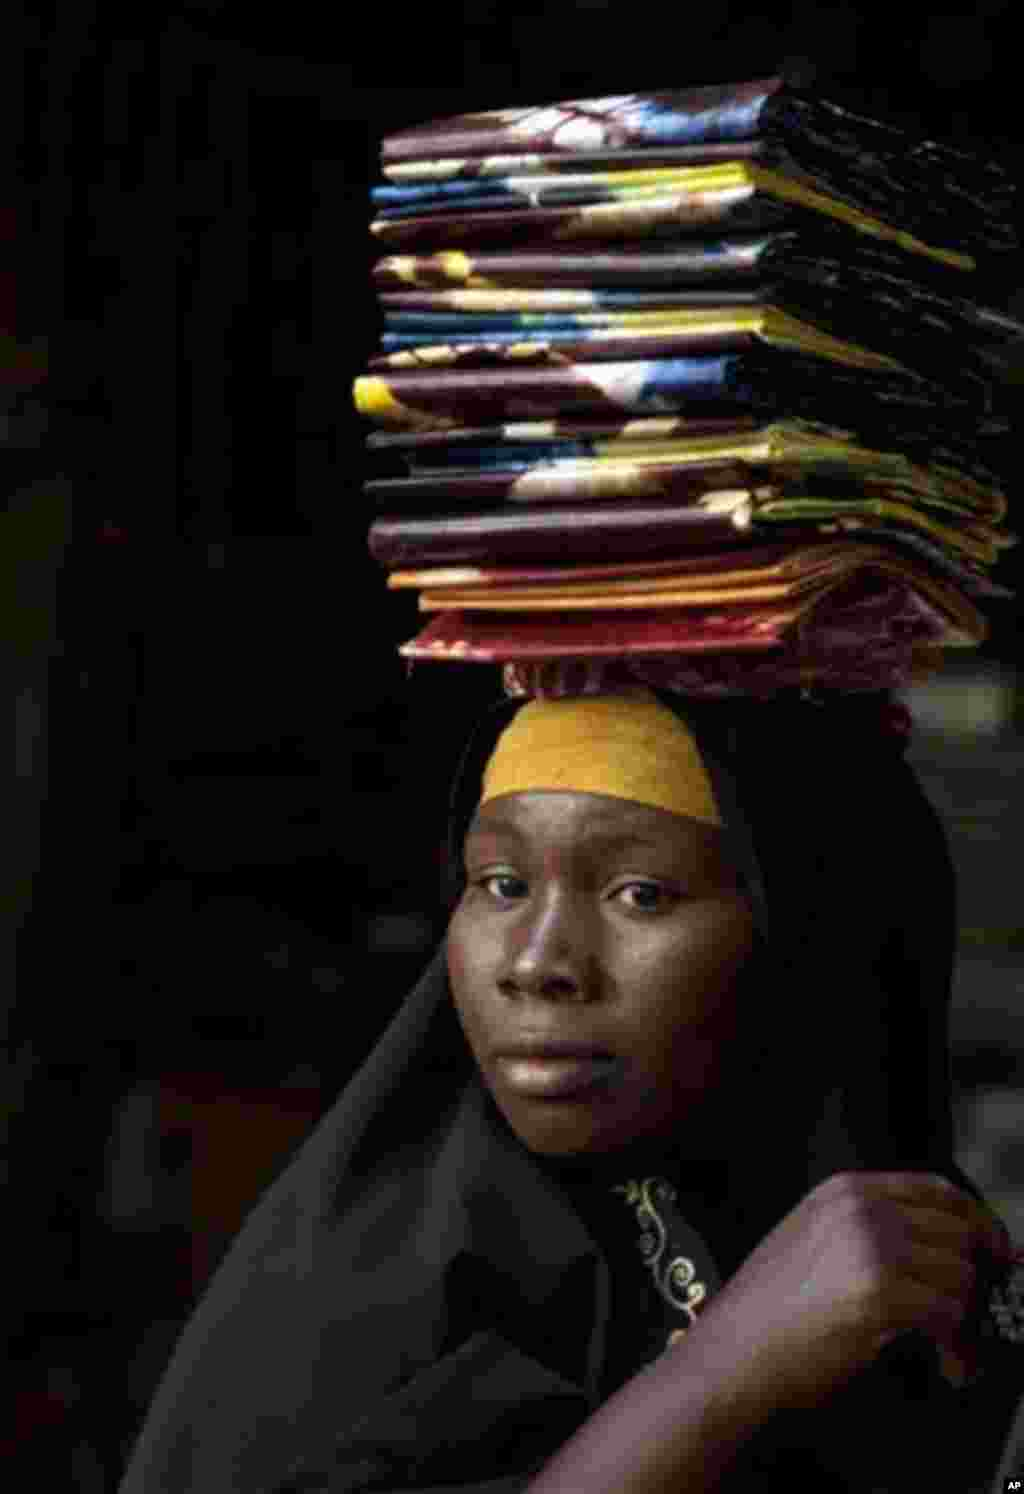 A cloth seller waits in hope of selling some pieces to a wholesale buyer, as sellers said their business was suffering following the recent coup, at the Grand Market in Bamako, Mali Saturday, March 31, 2012. The countries neighboring Mali have condemned t